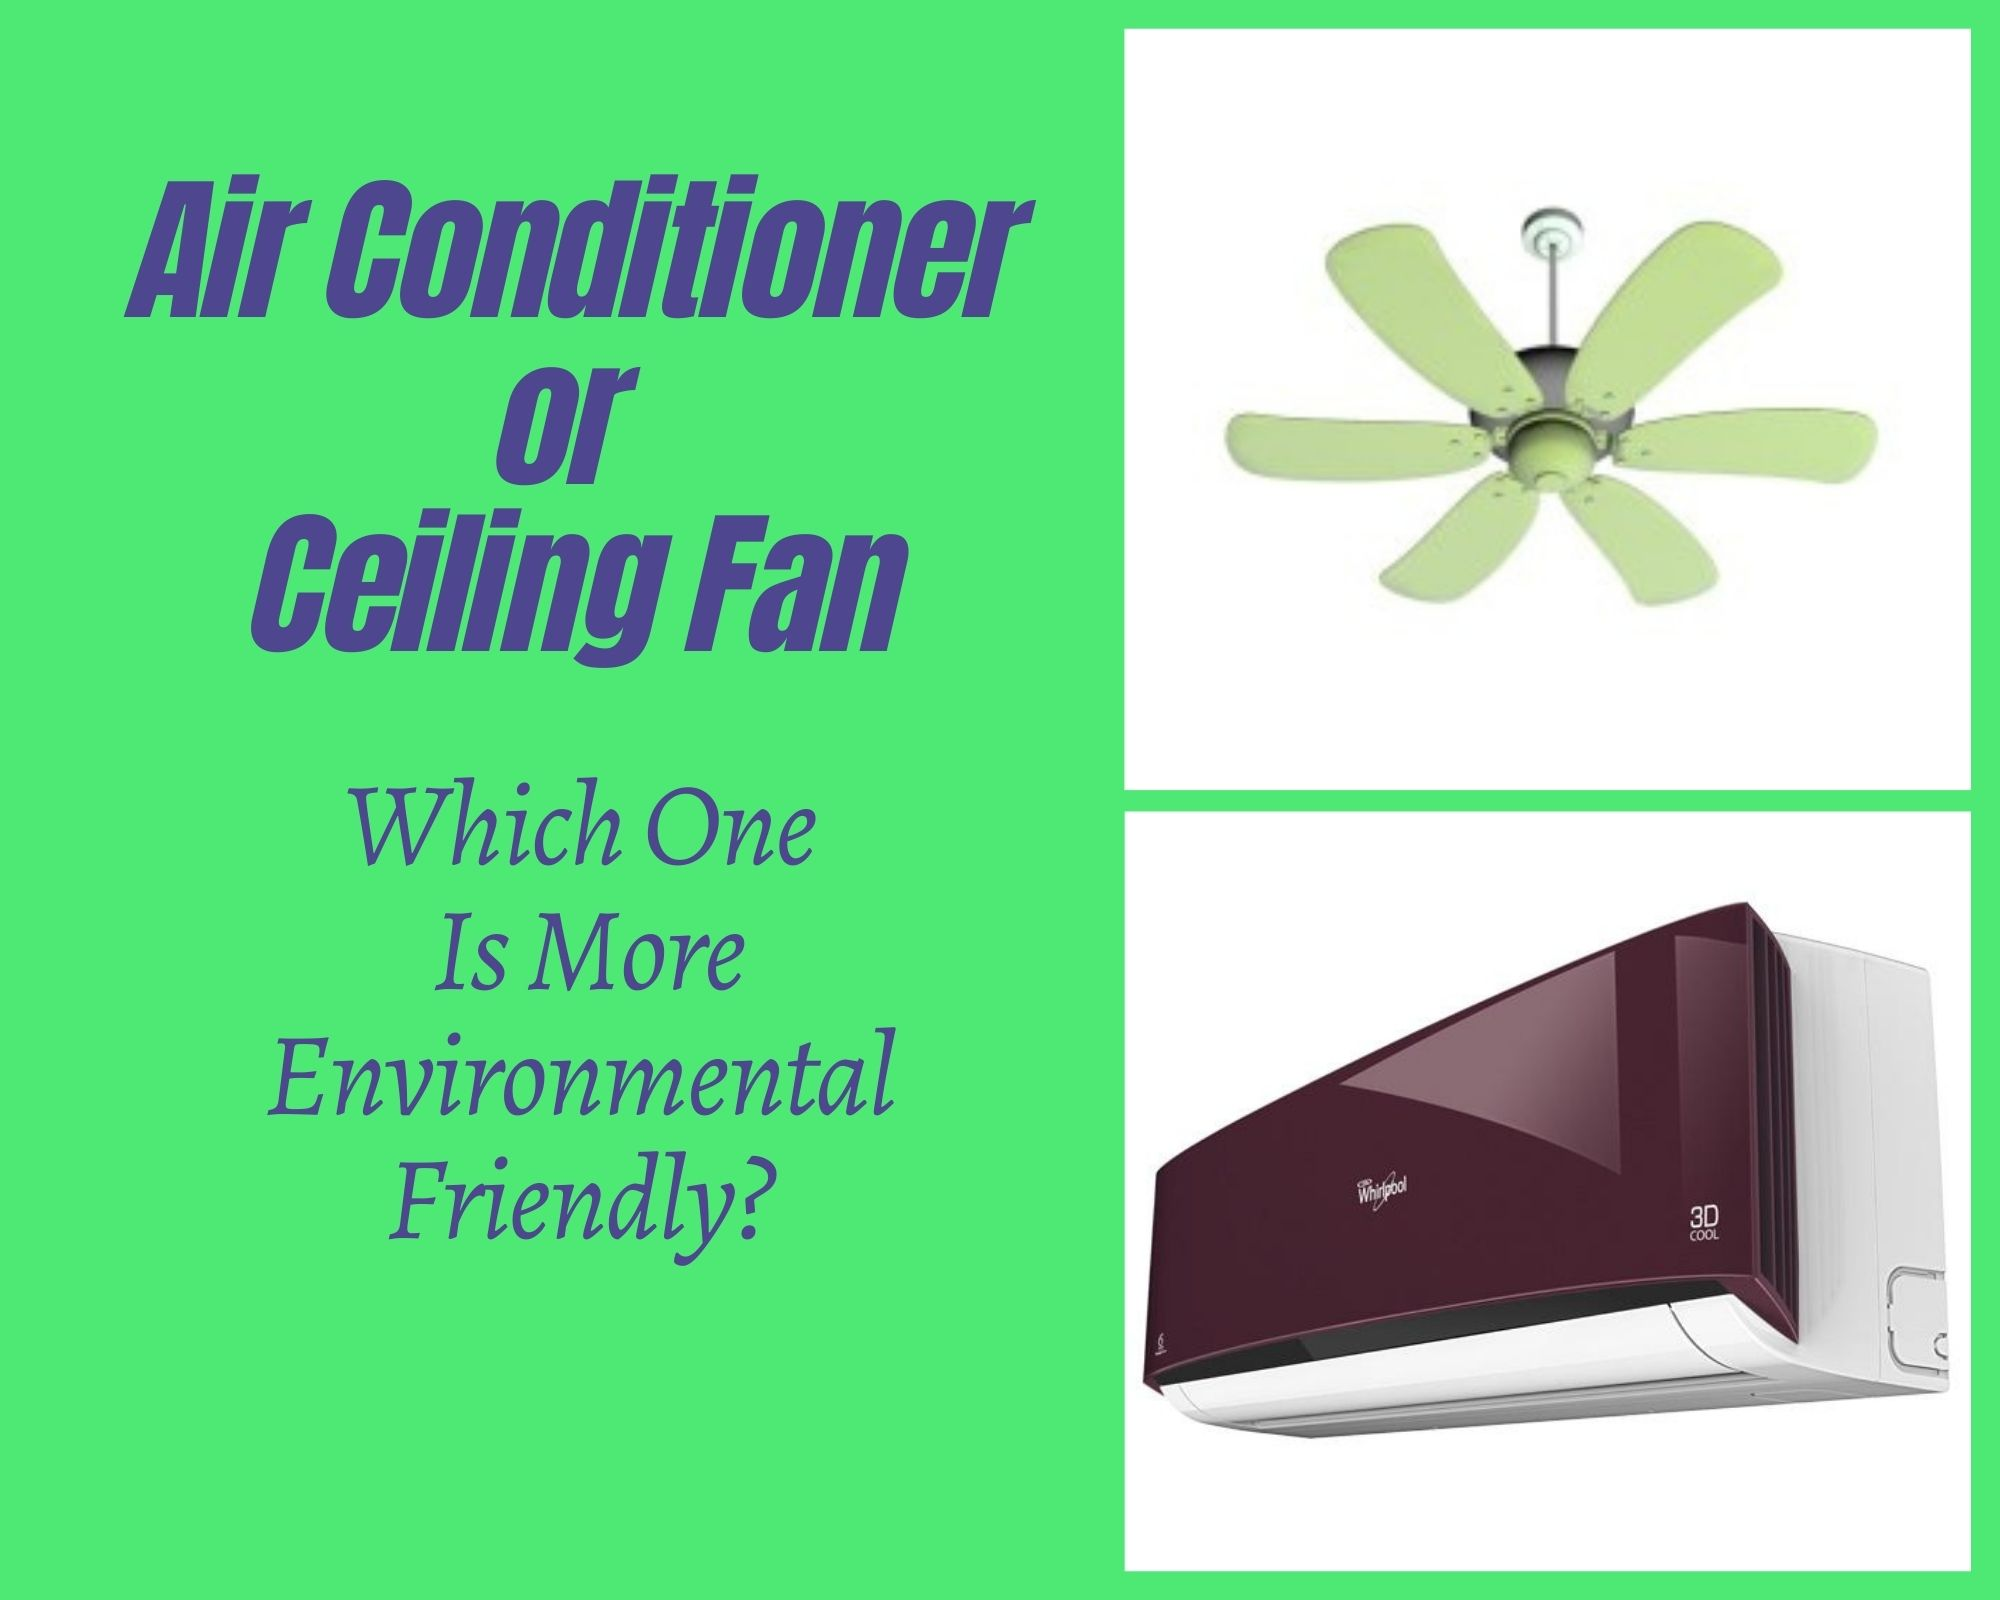 Air Conditioner or Ceiling Fan – Which One Is More Environmental Friendly